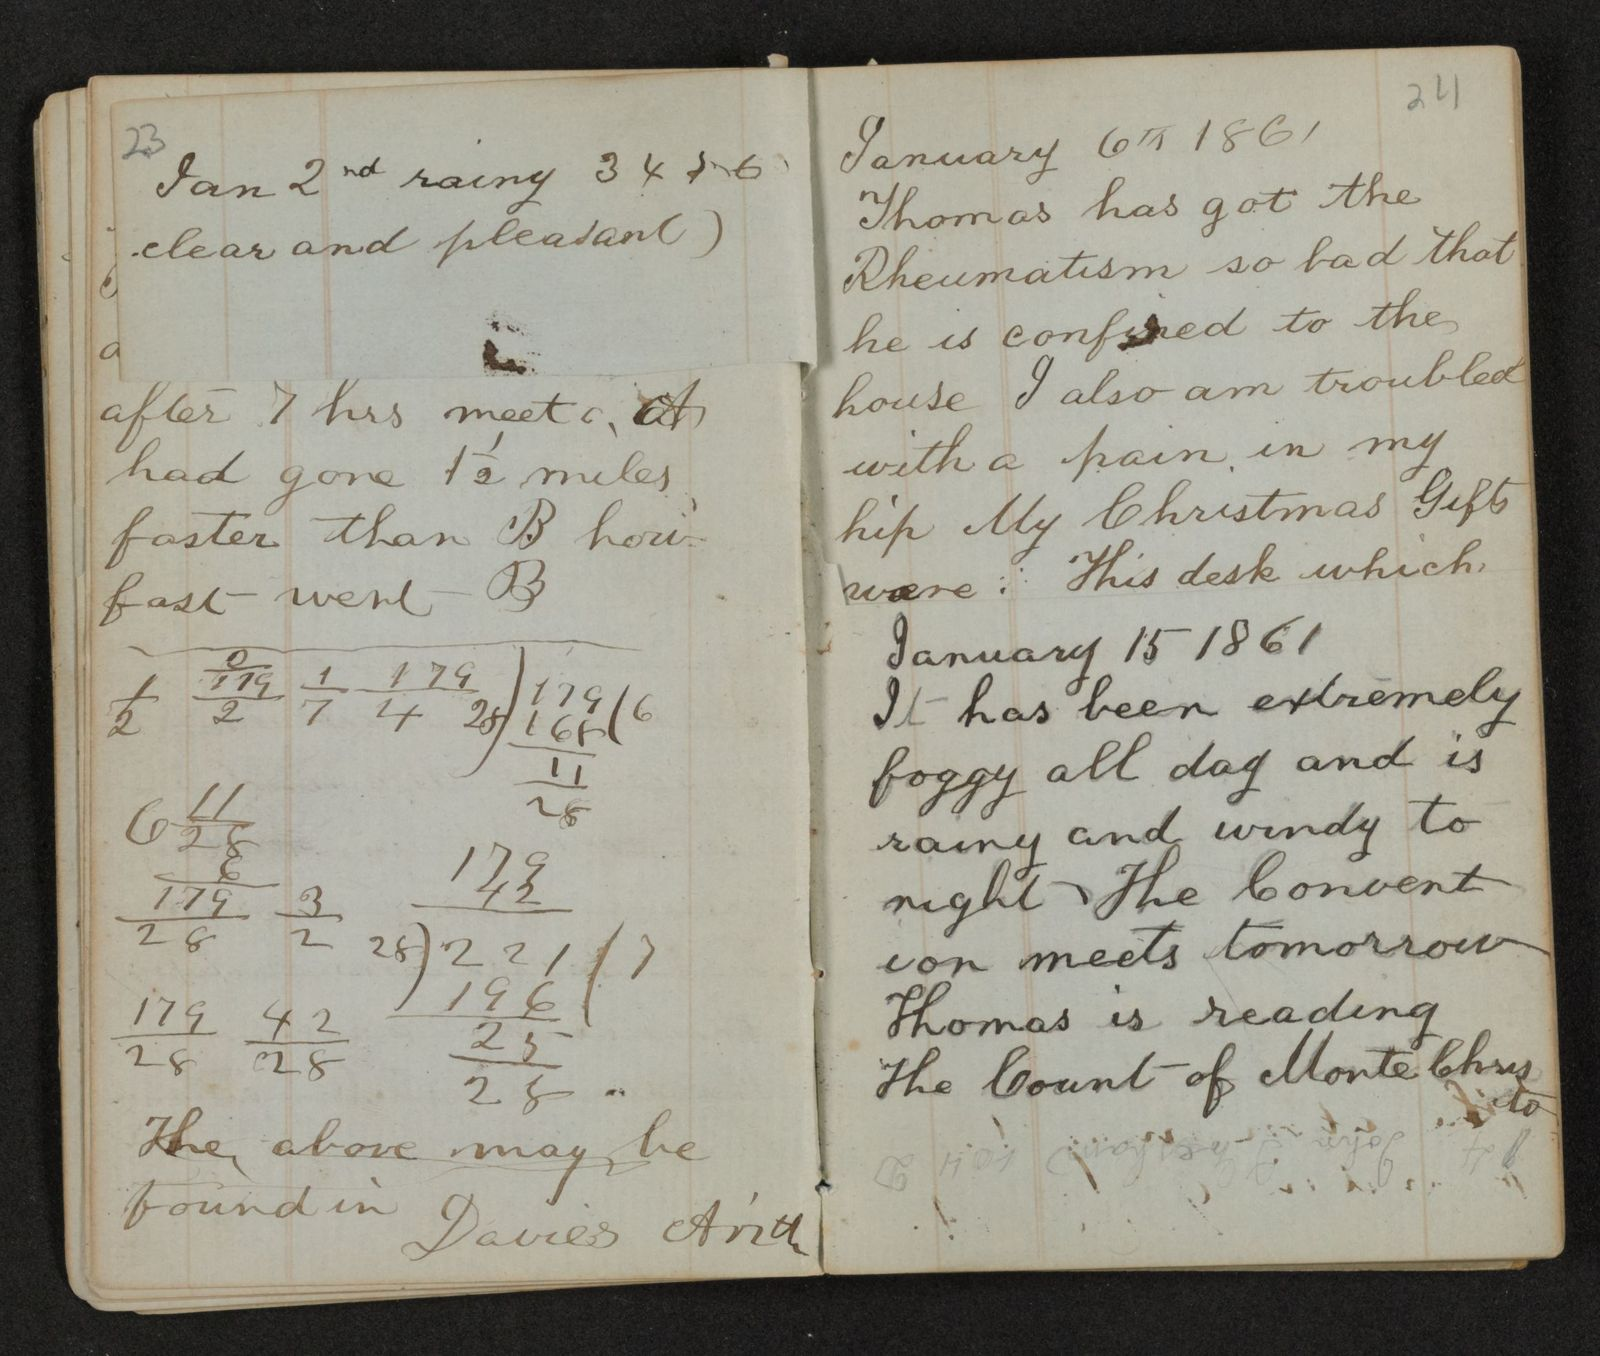 Lewis H. Machen Family Papers: Diaries and Diary Transcriptions, 1860-1865;